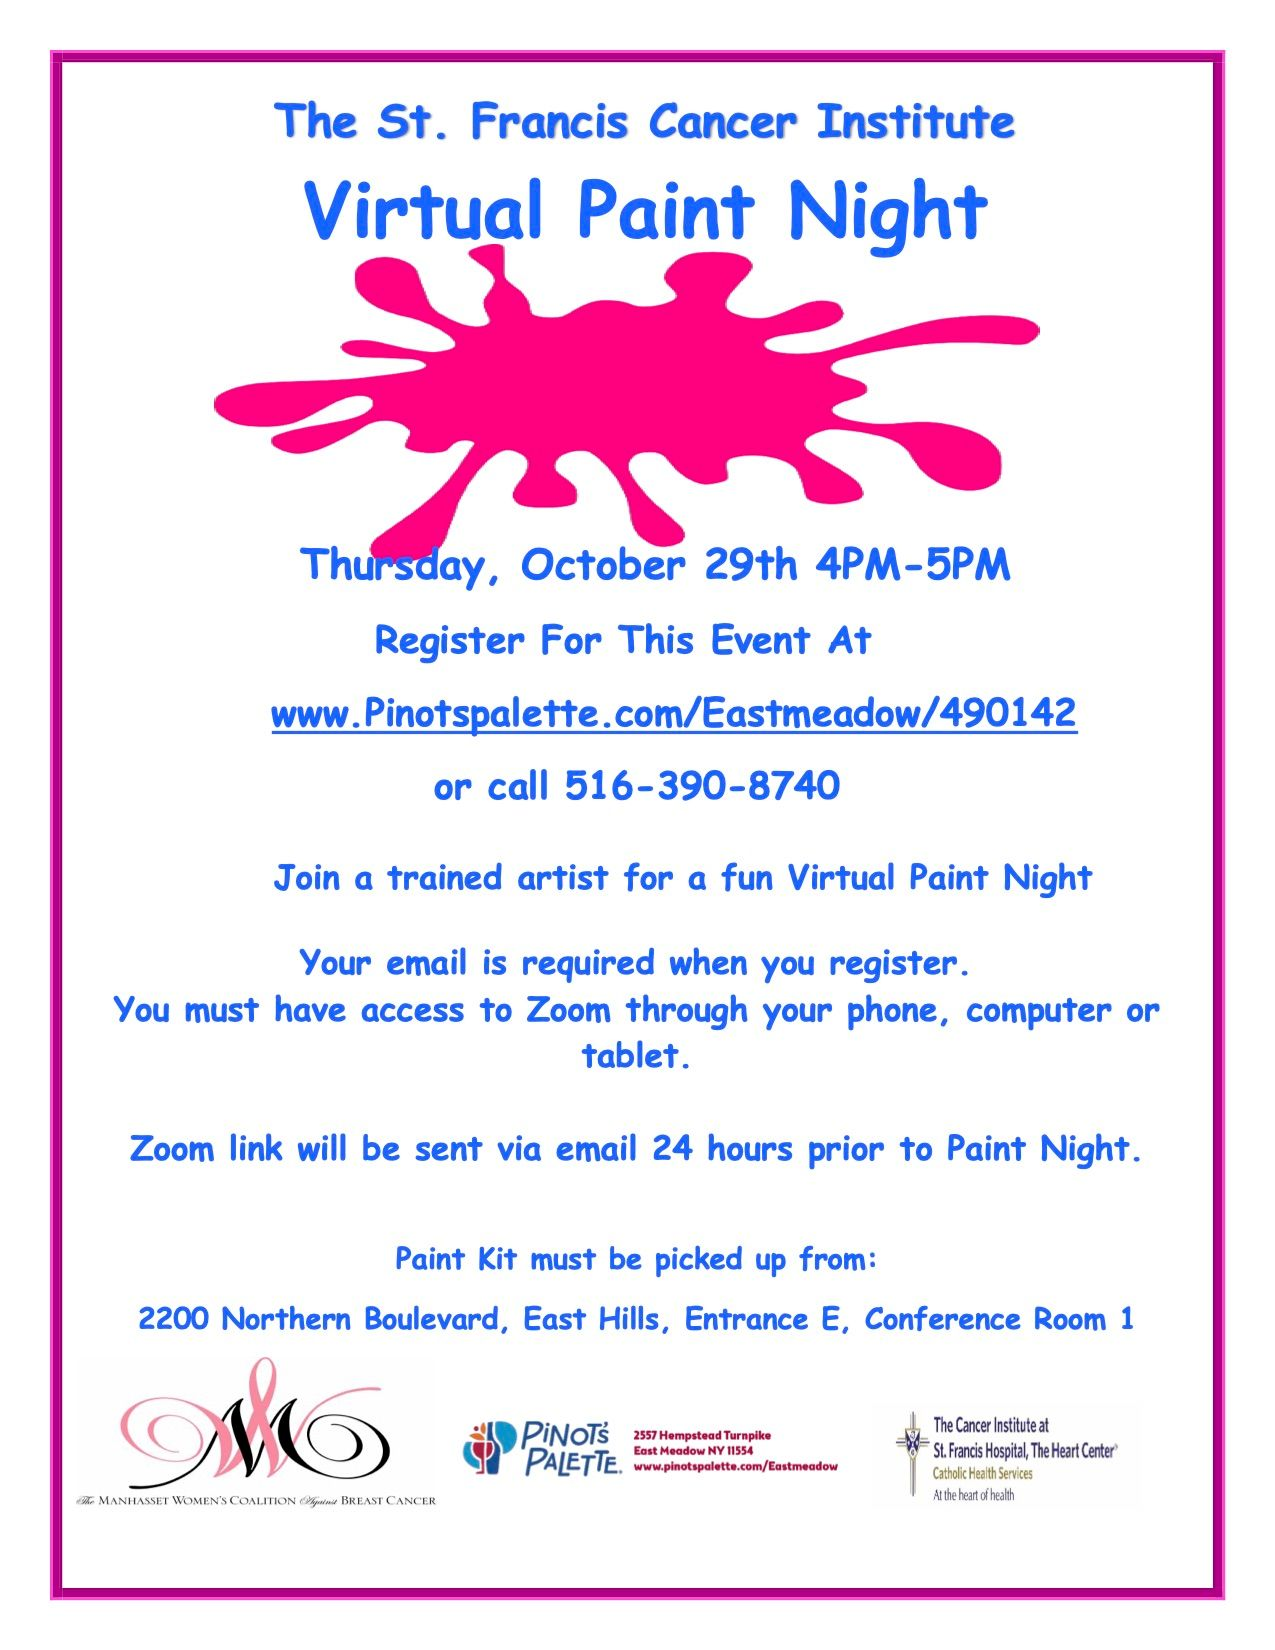 St.Francis Cancer Institute Virtual Paint Night